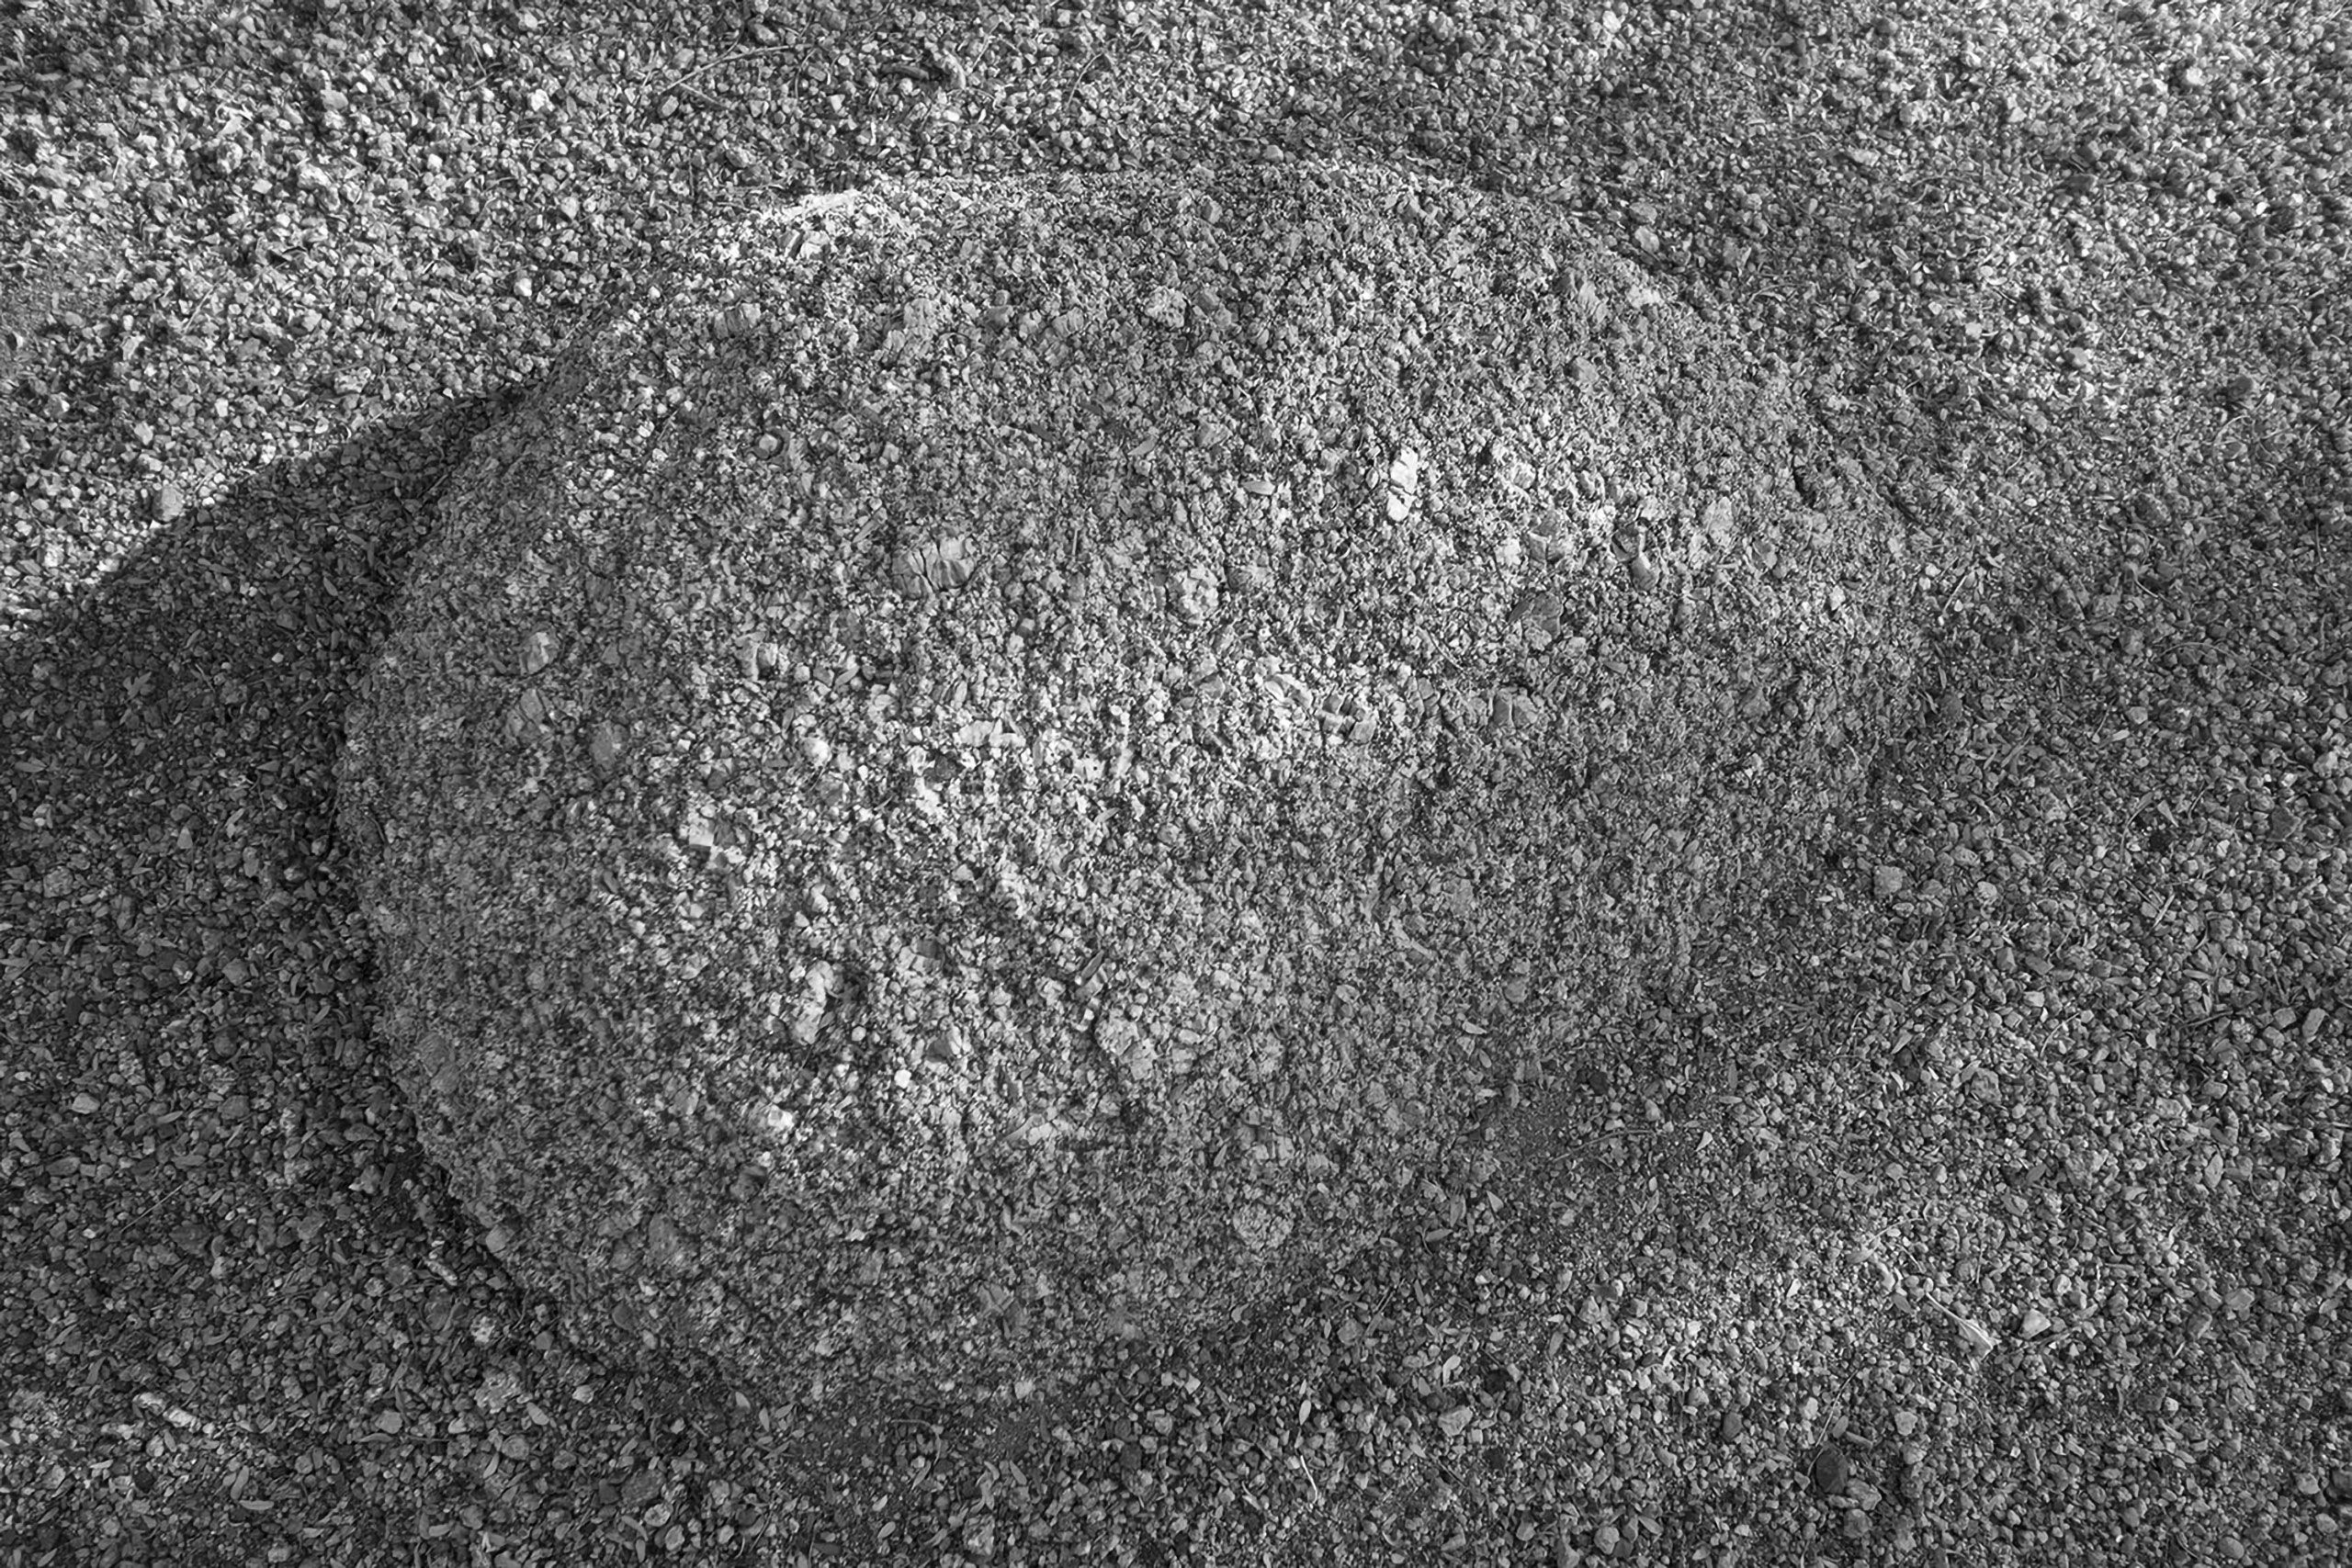 B&W photo of a rock in the desert near Phoenix Arizona